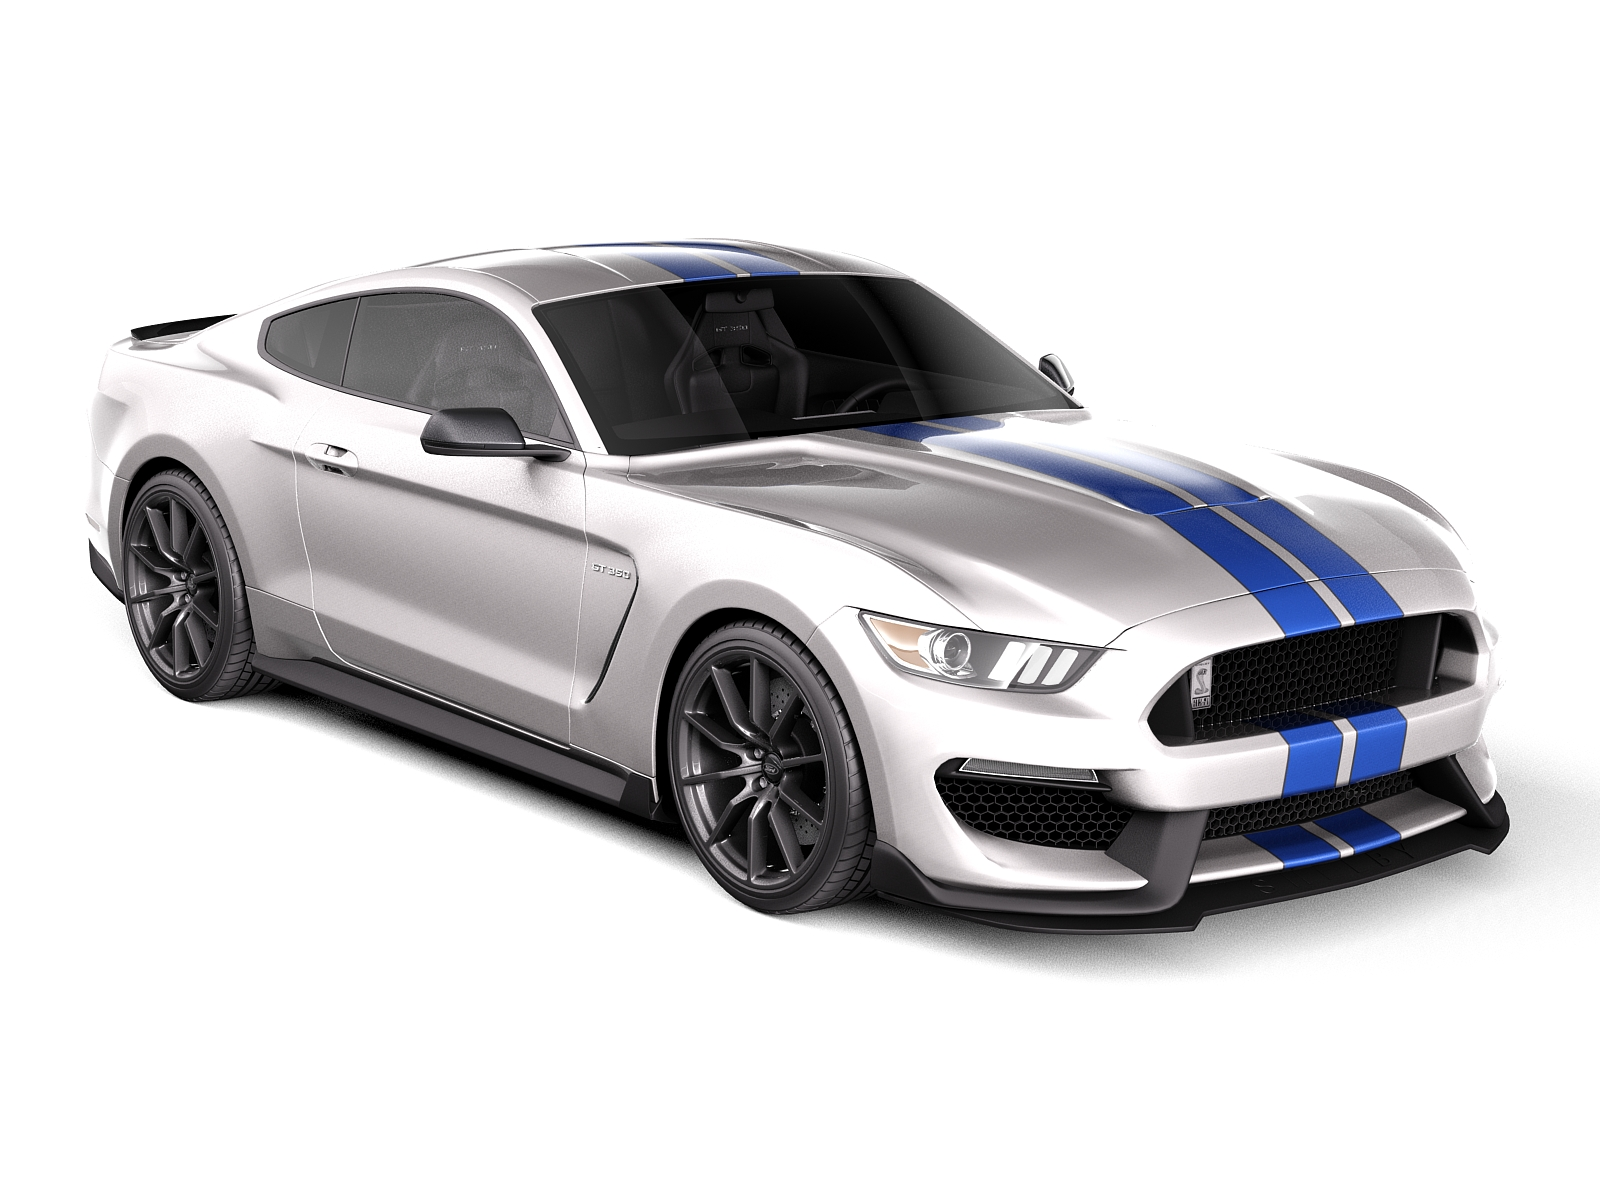 2019 Ford Shelby Gt500 Review - New Cars Review